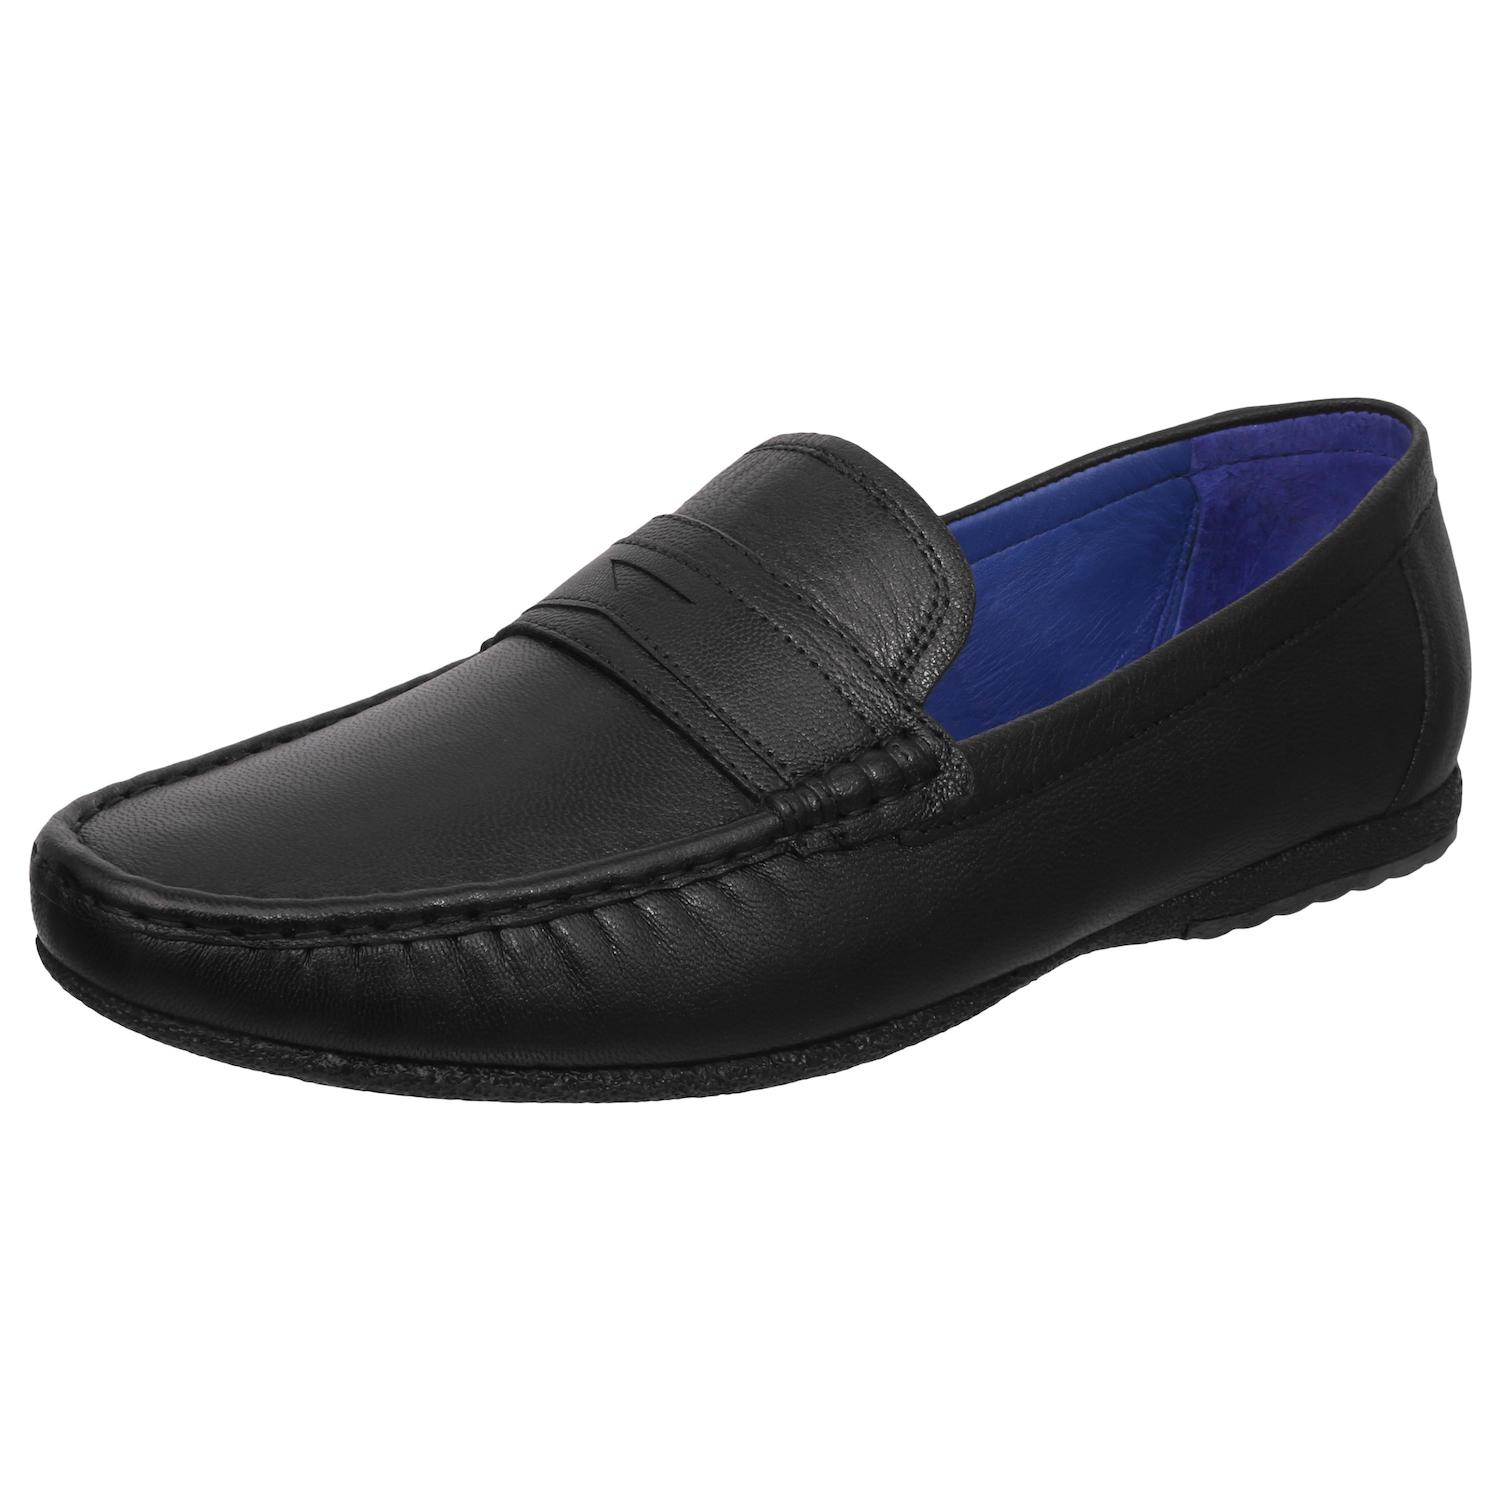 Black Slip-On Moccasin Shoes